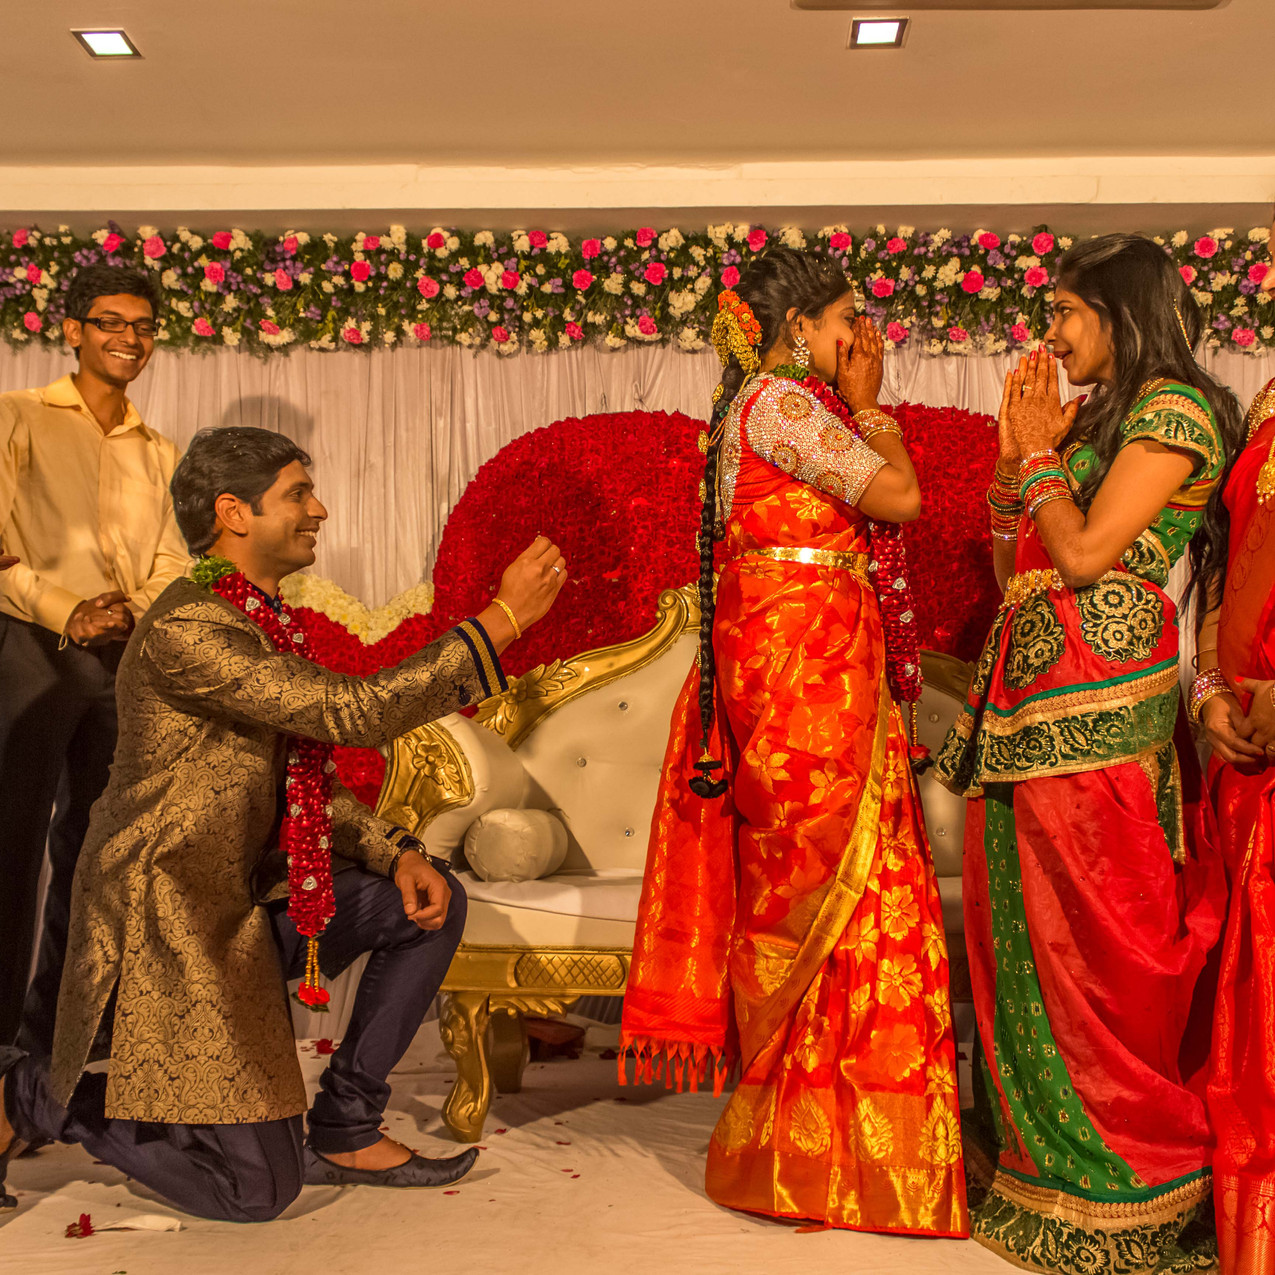 Fairytale Studios_Akshata-Sandeep Engagement_26-Dec-2016_Engagement_19-2